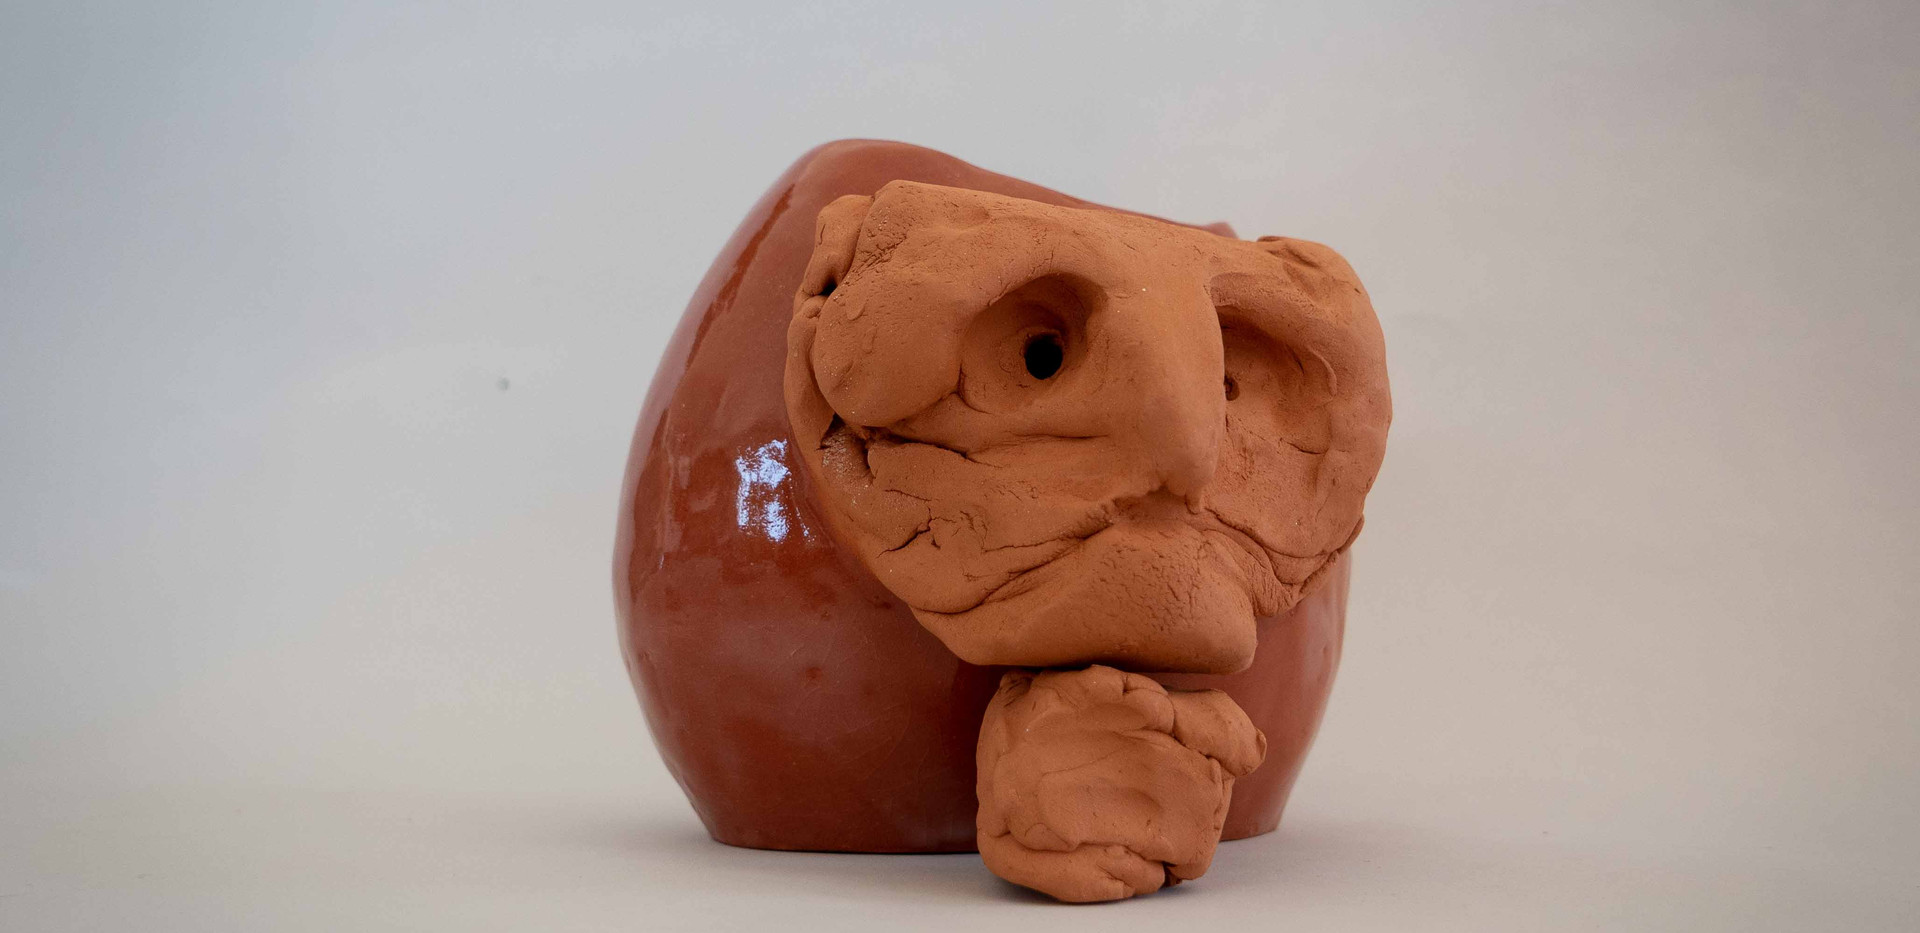 Vase with a face